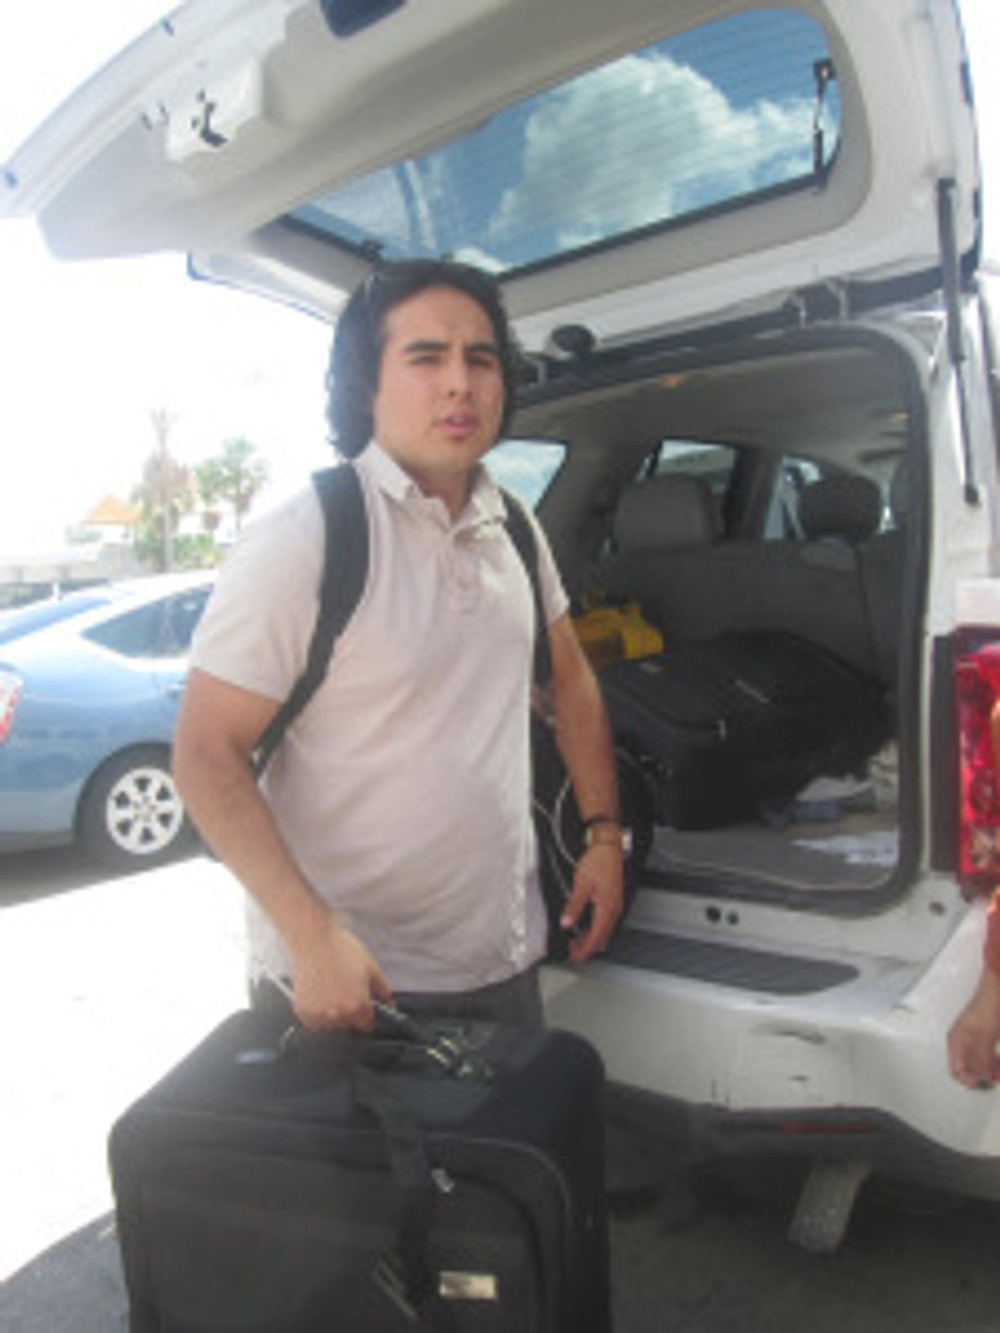 Misael was selected from a national pool of college students who were formerly enrolled in Migrant and Seasonal Head Start Programs.